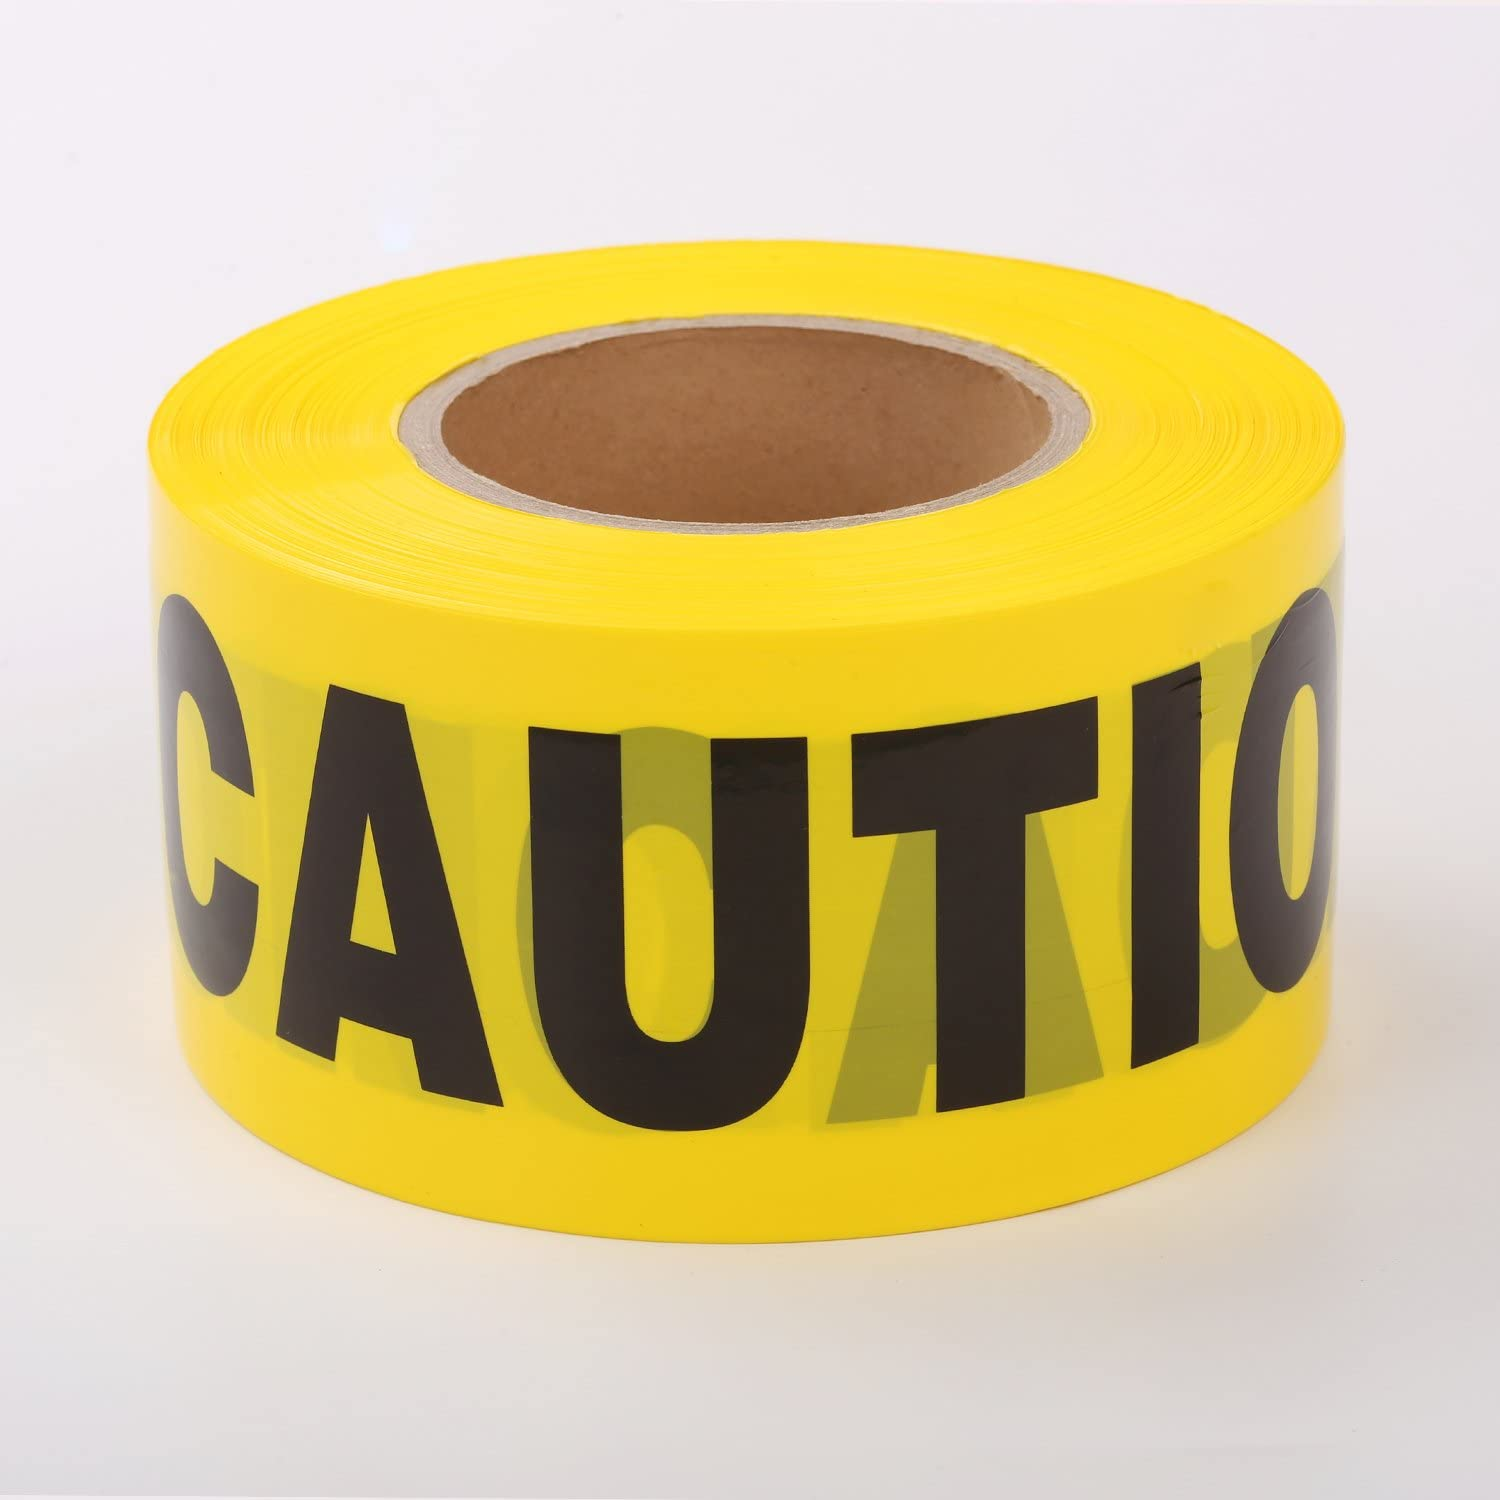 TopSoon CAUTION Tape Roll 3-Inch Wide x 1000-Feet Long Bright Yellow Barrier Tape Warning Tape Construction Tape